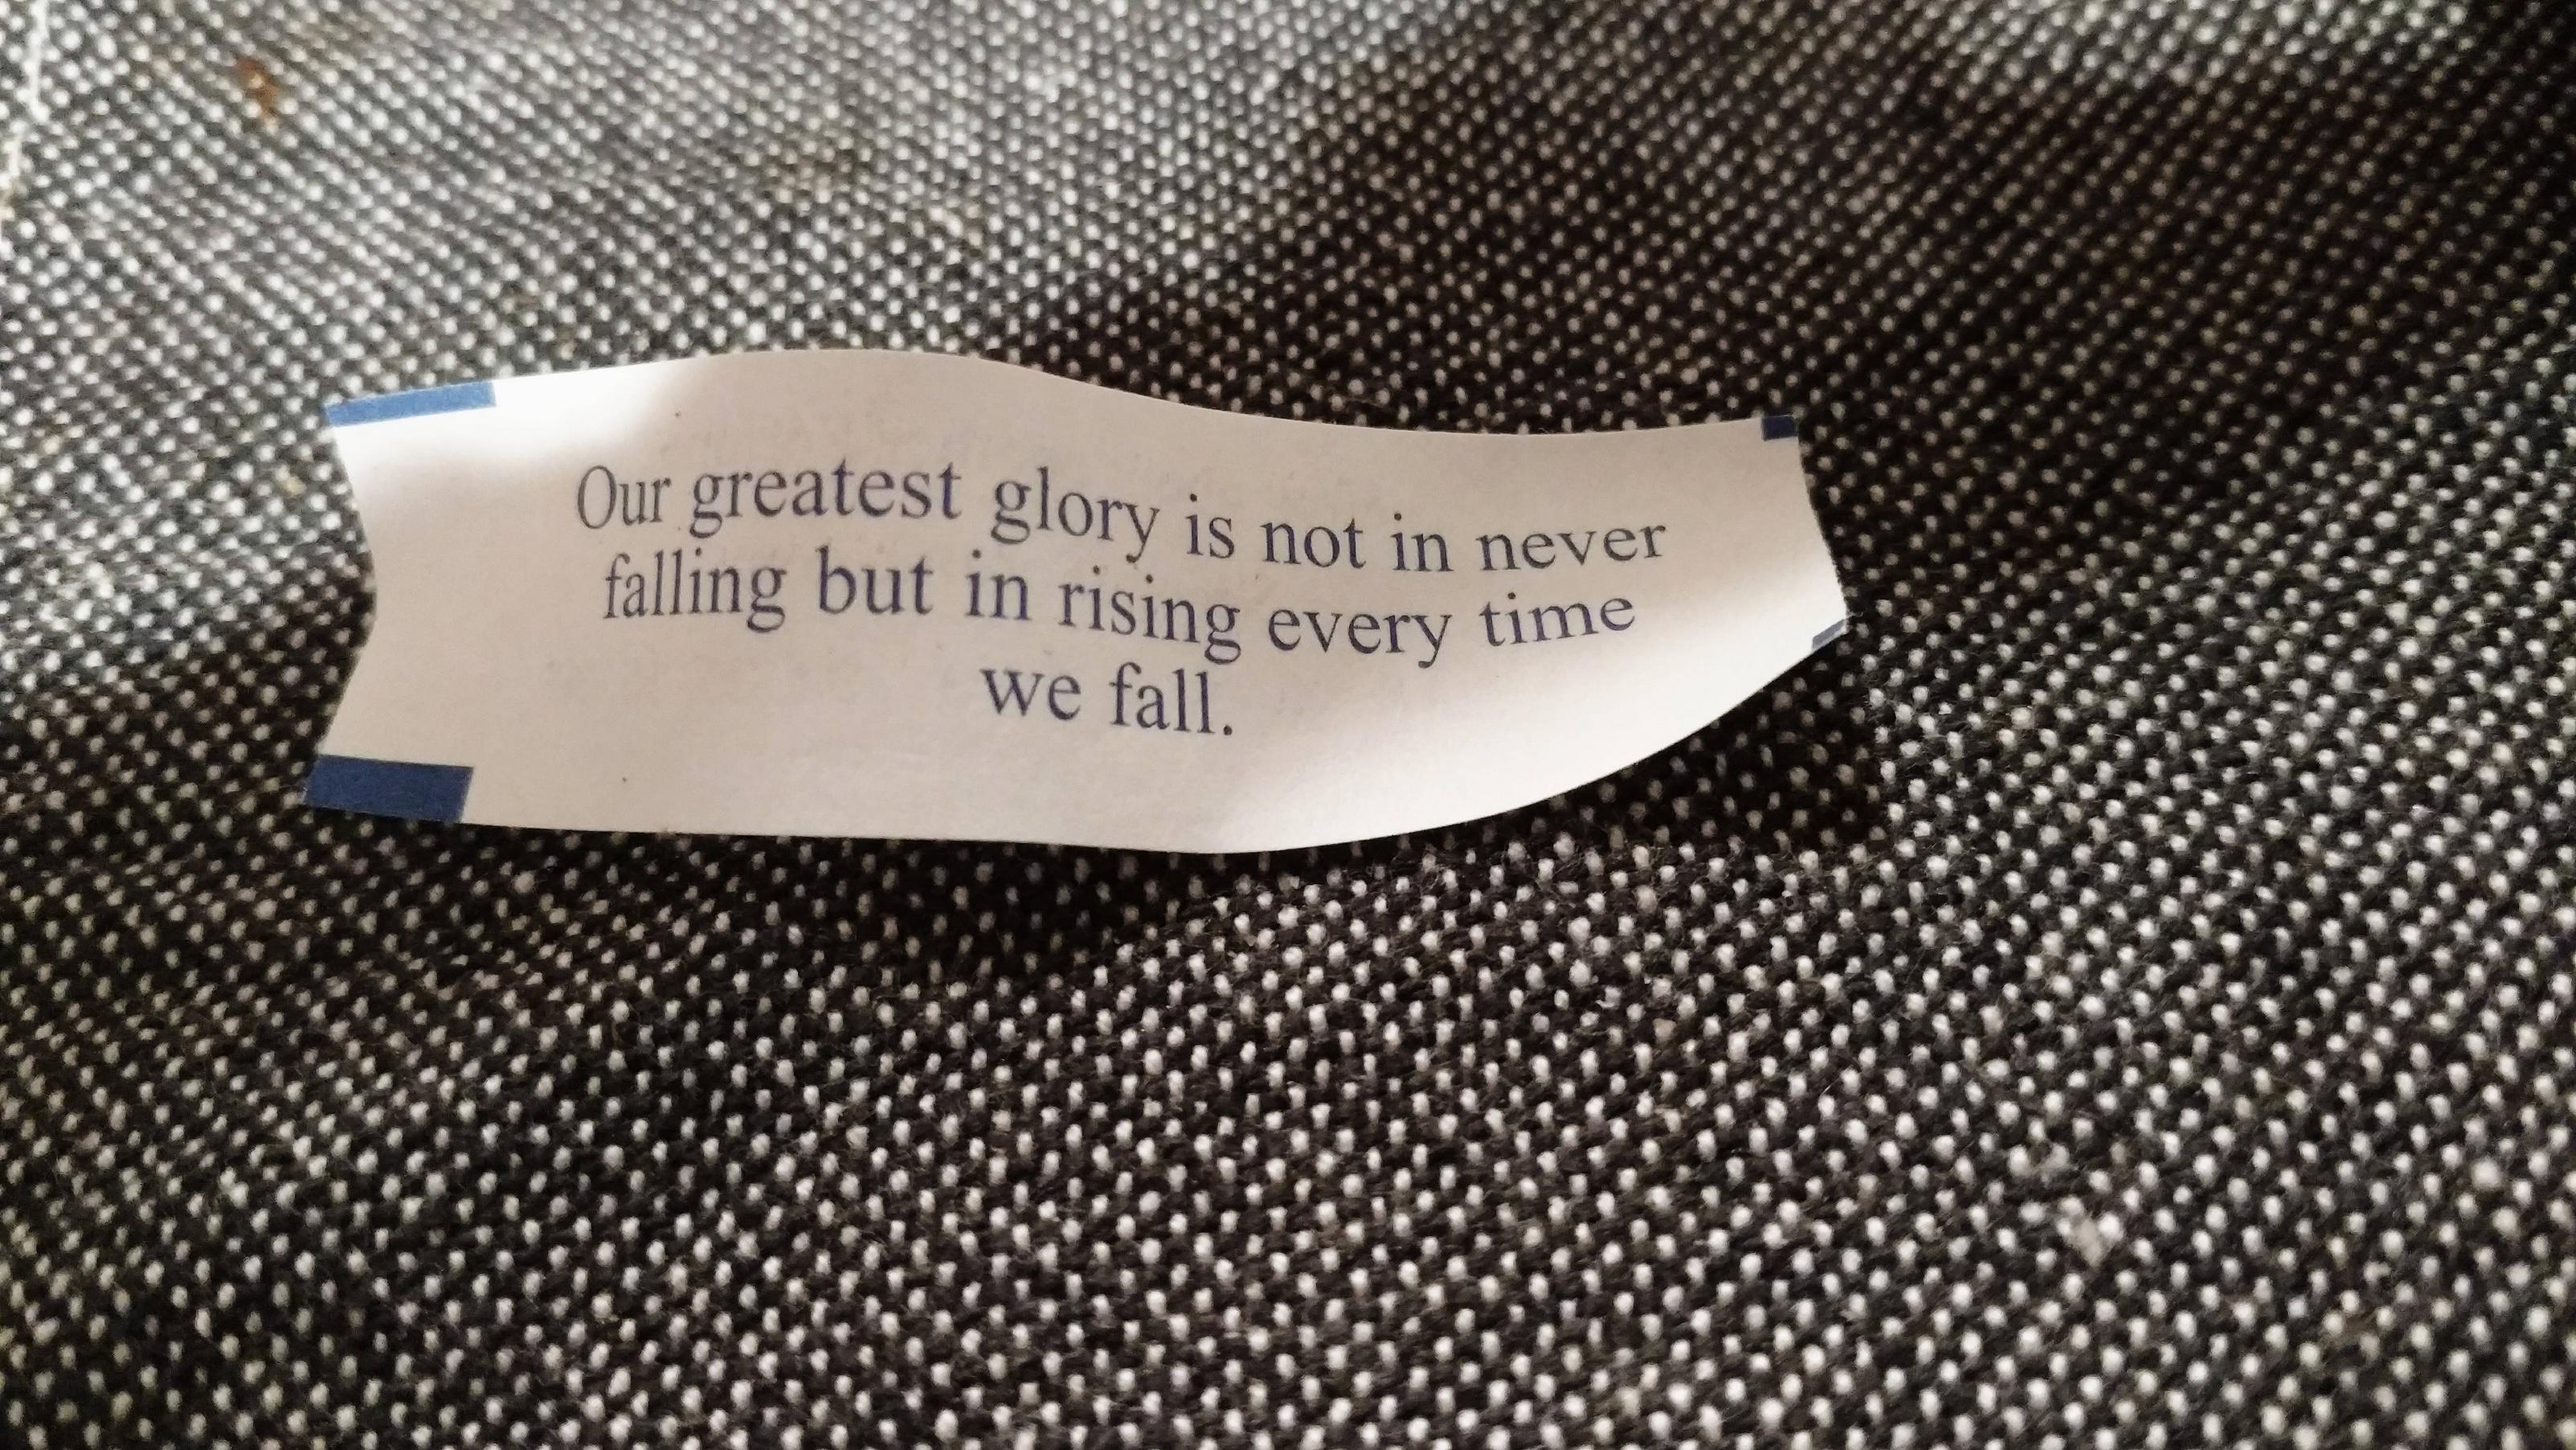 [image]Nice little unexpected reminder from a fortune cookie tonight.